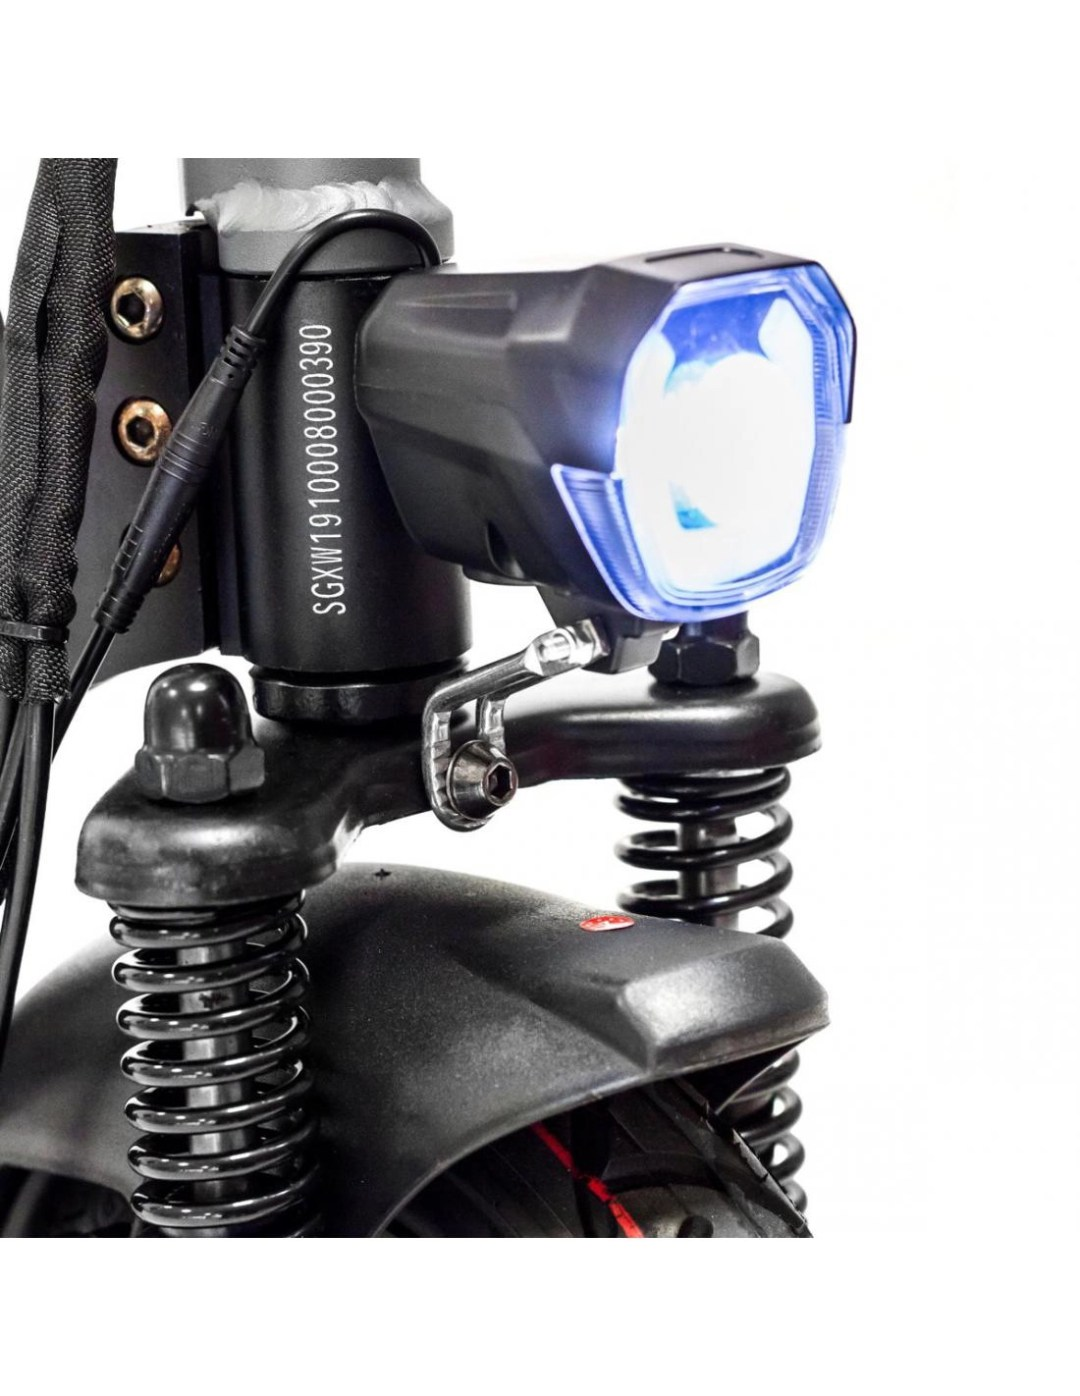 Luces smartgyro speedway v20